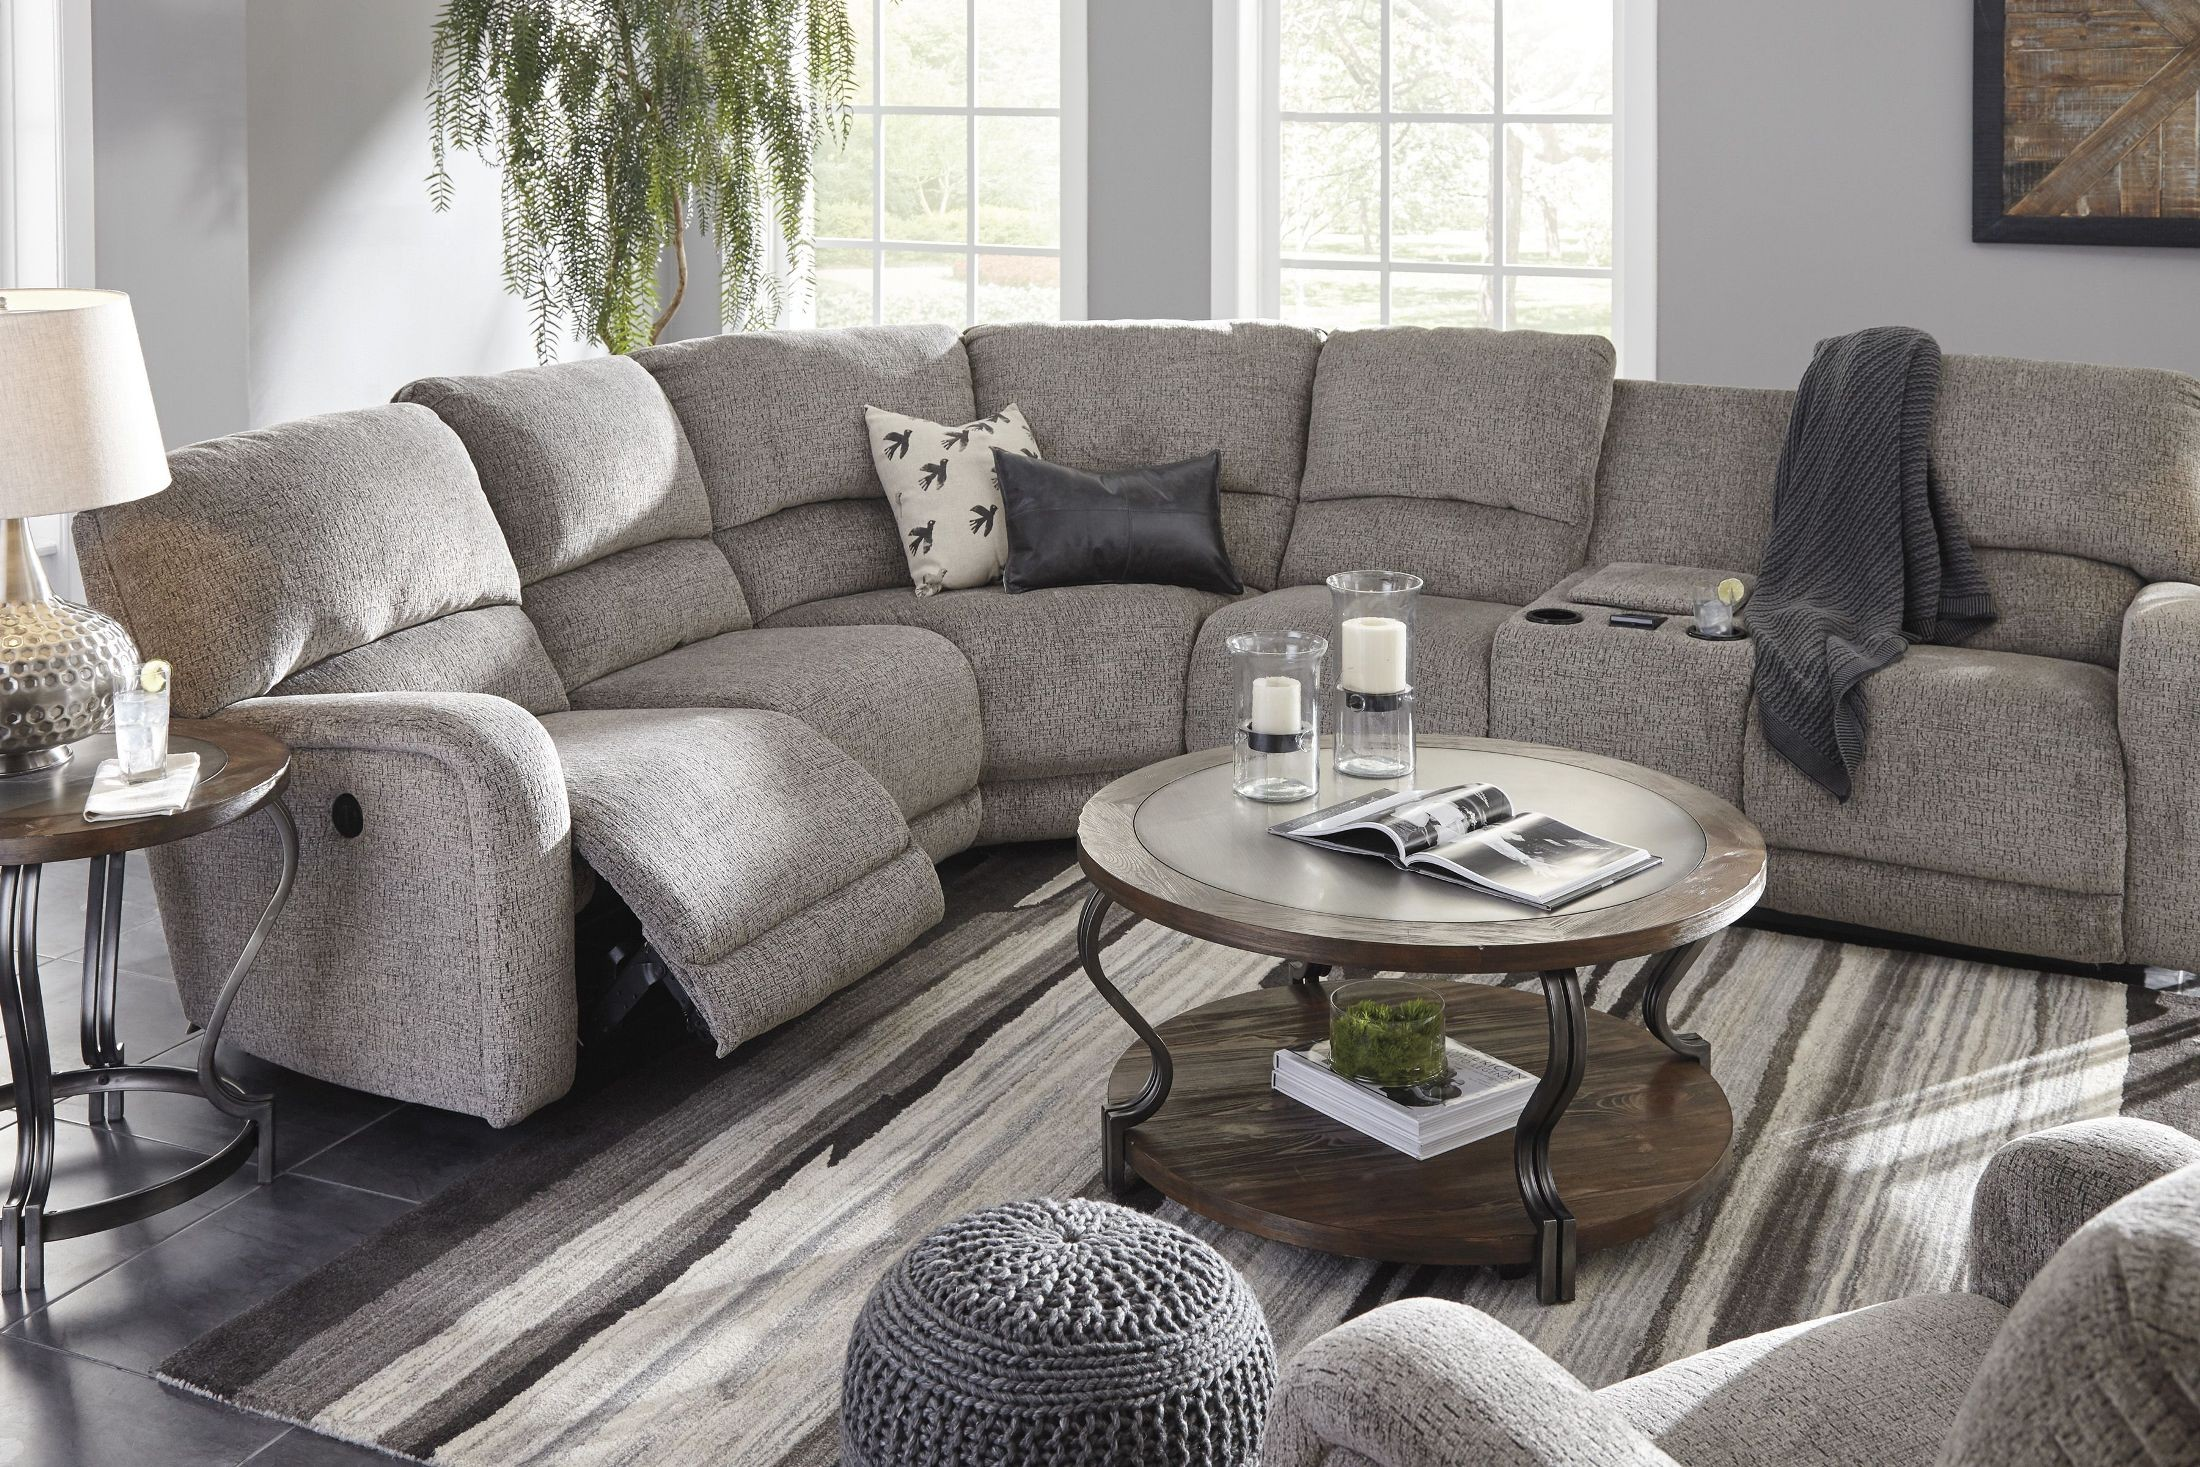 Pittsfield Fossil LAF Power Reclining Sectional